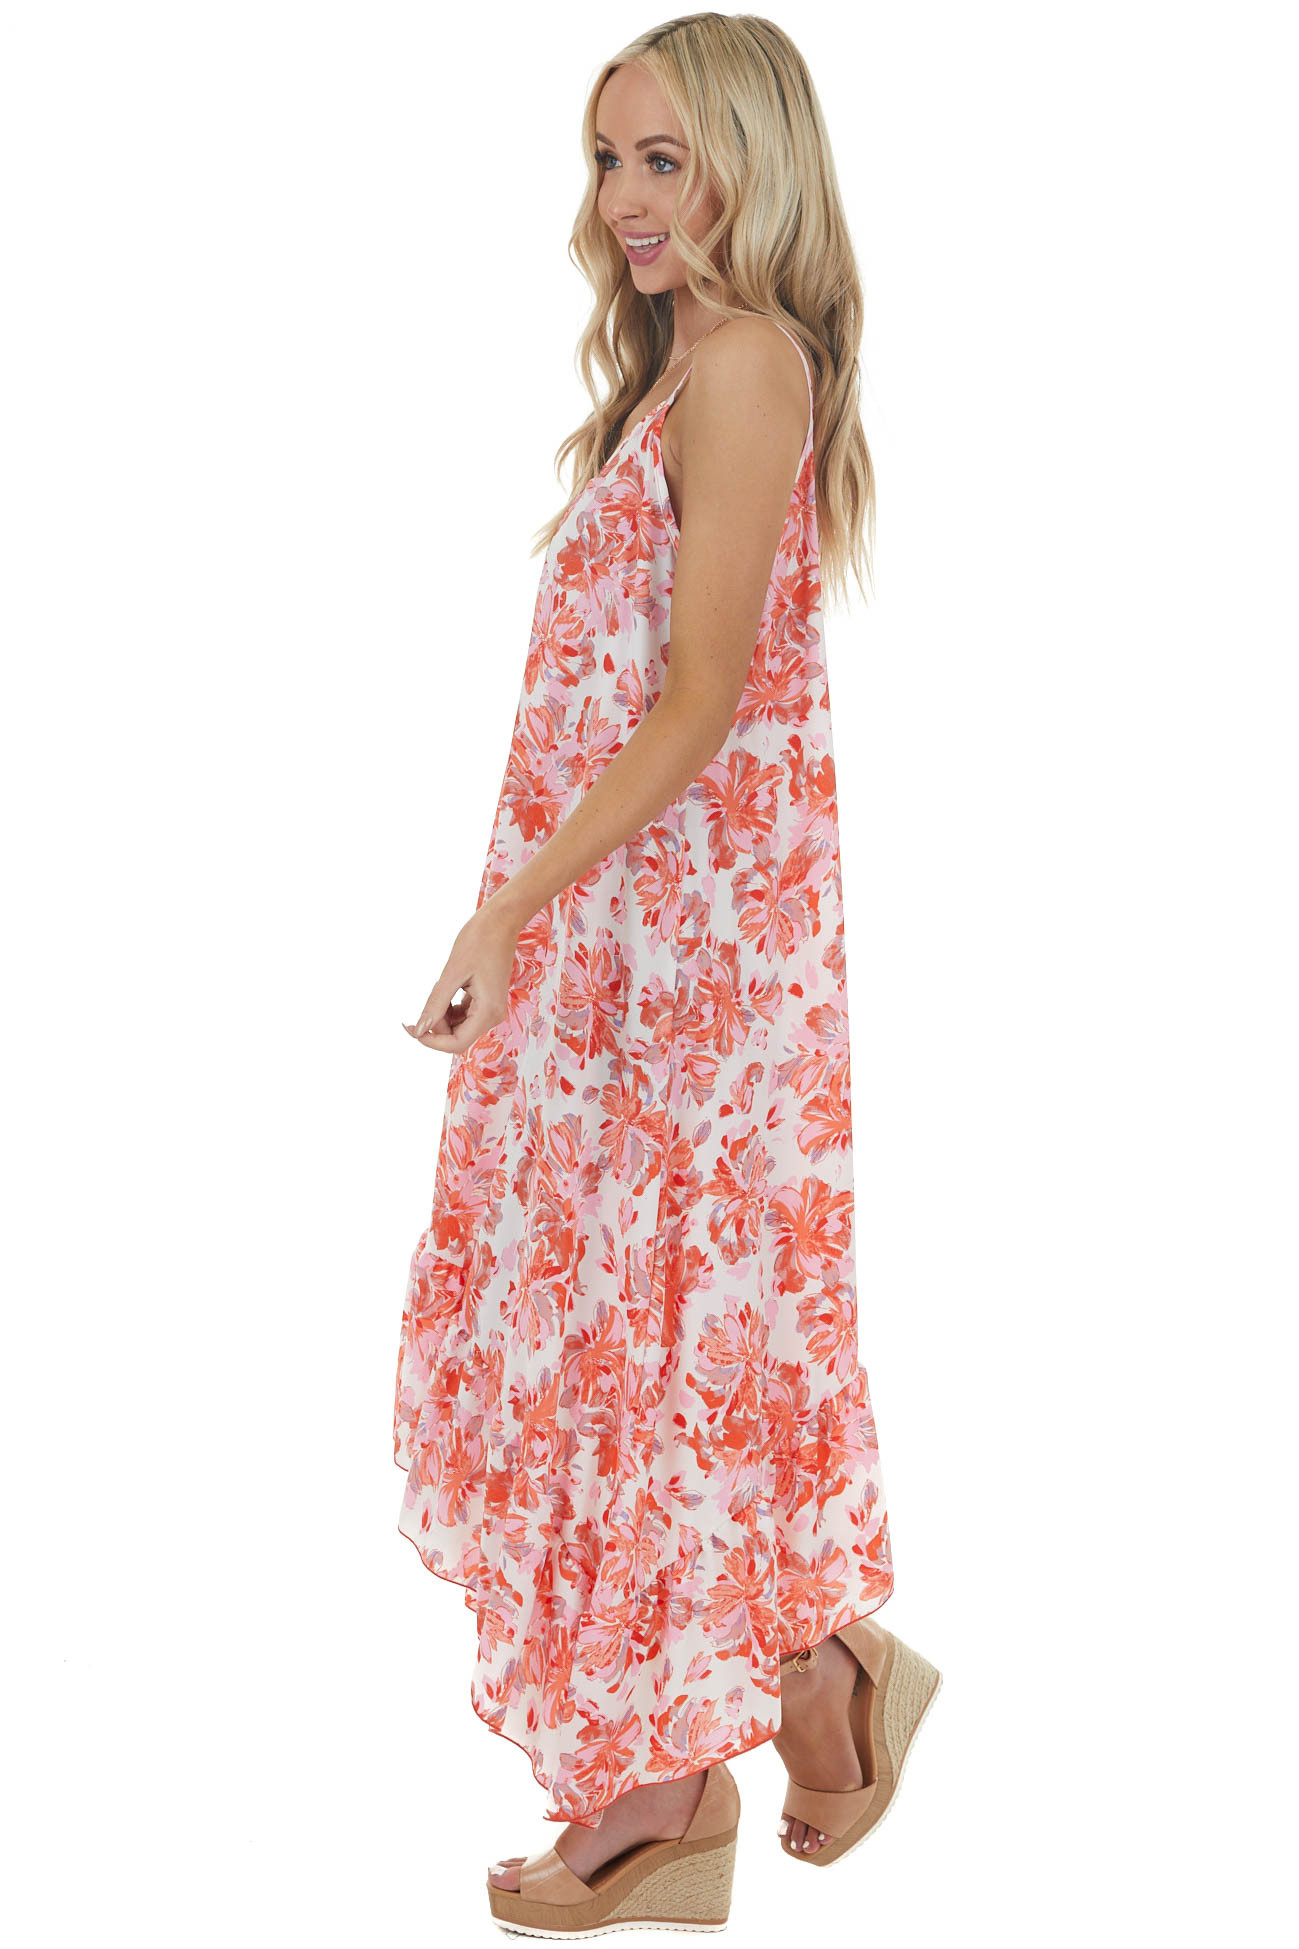 Baby Pink Floral Print Sleeveless Midi Dress with Ruffles